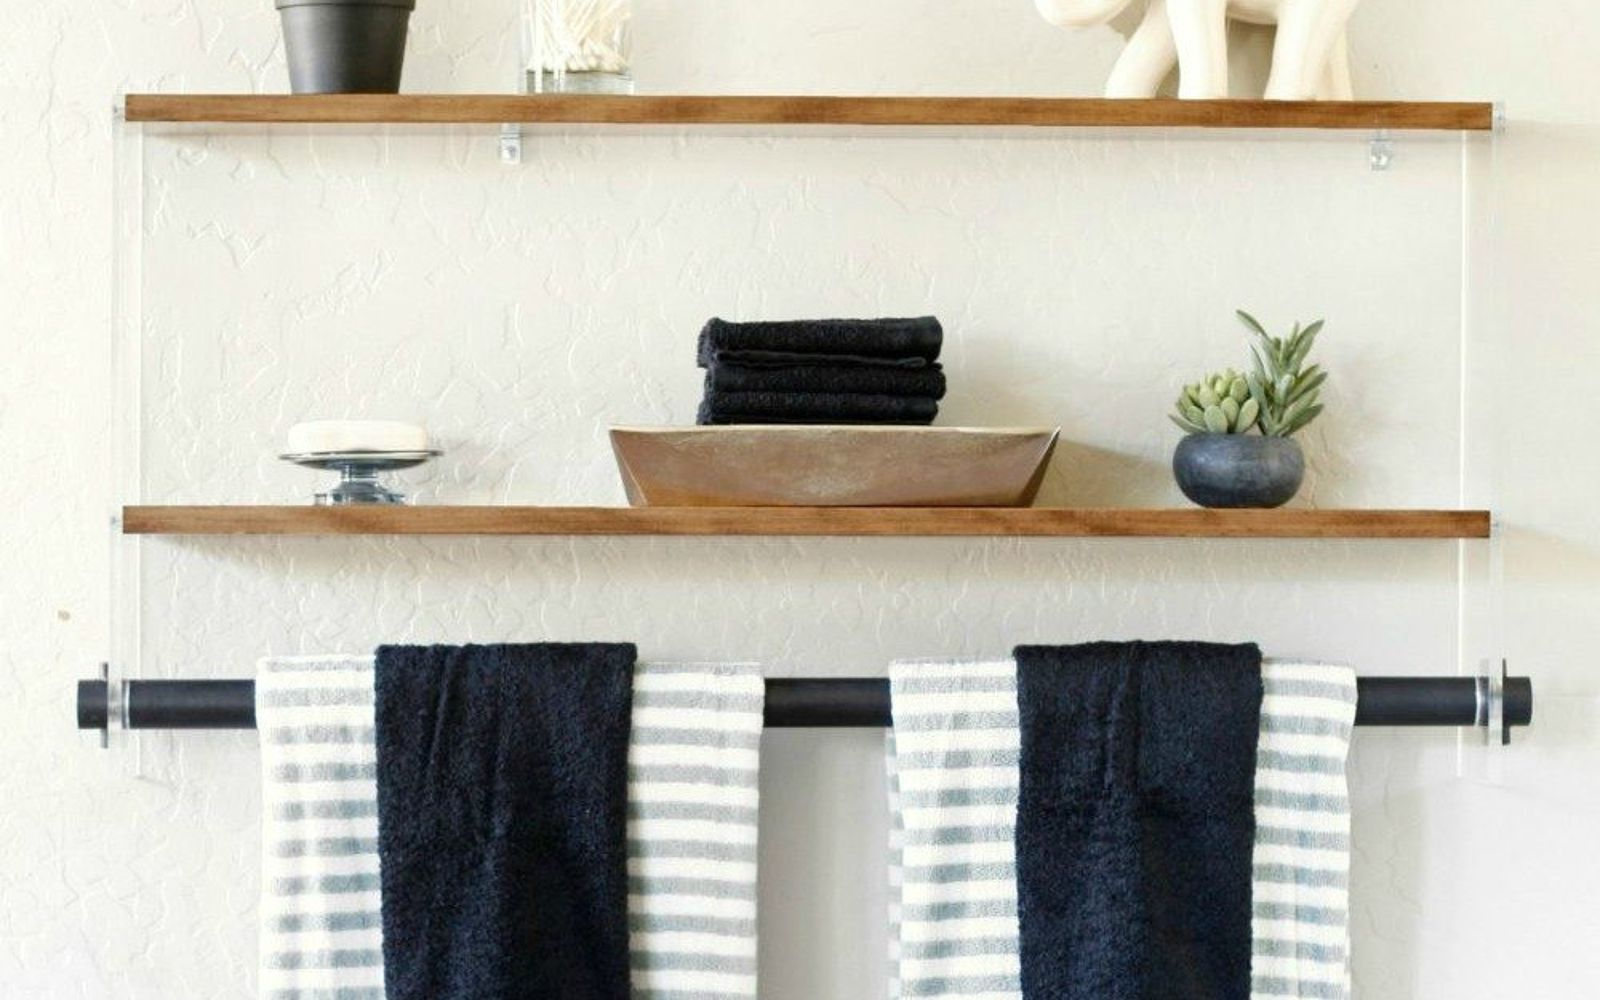 s 9 incredible organizing ideas we wish we d seen sooner, organizing, repurposing upcycling, This chic wood acrylic wall shelf